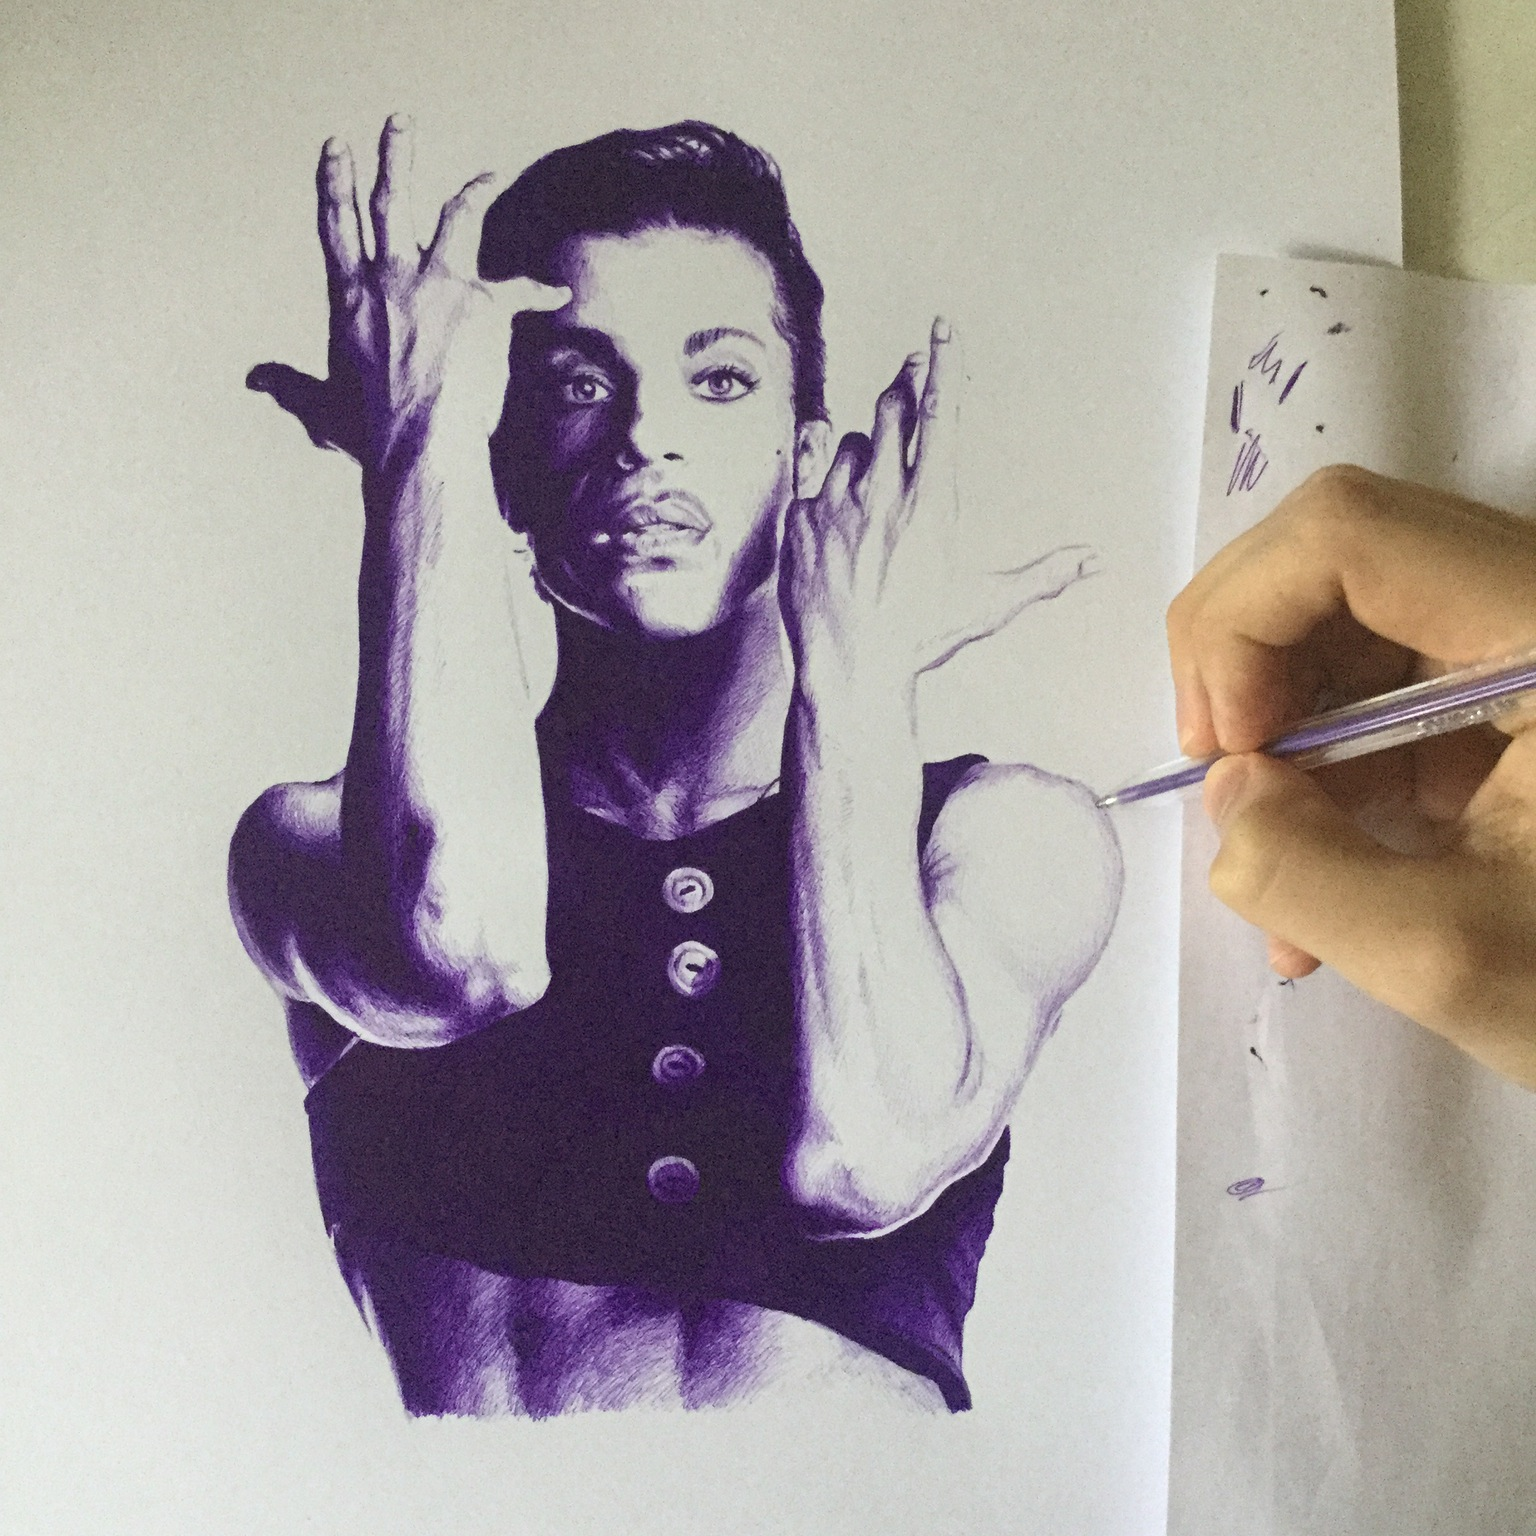 1536x1536 My Drawing Of Prince In Purple Ball Point Pen.